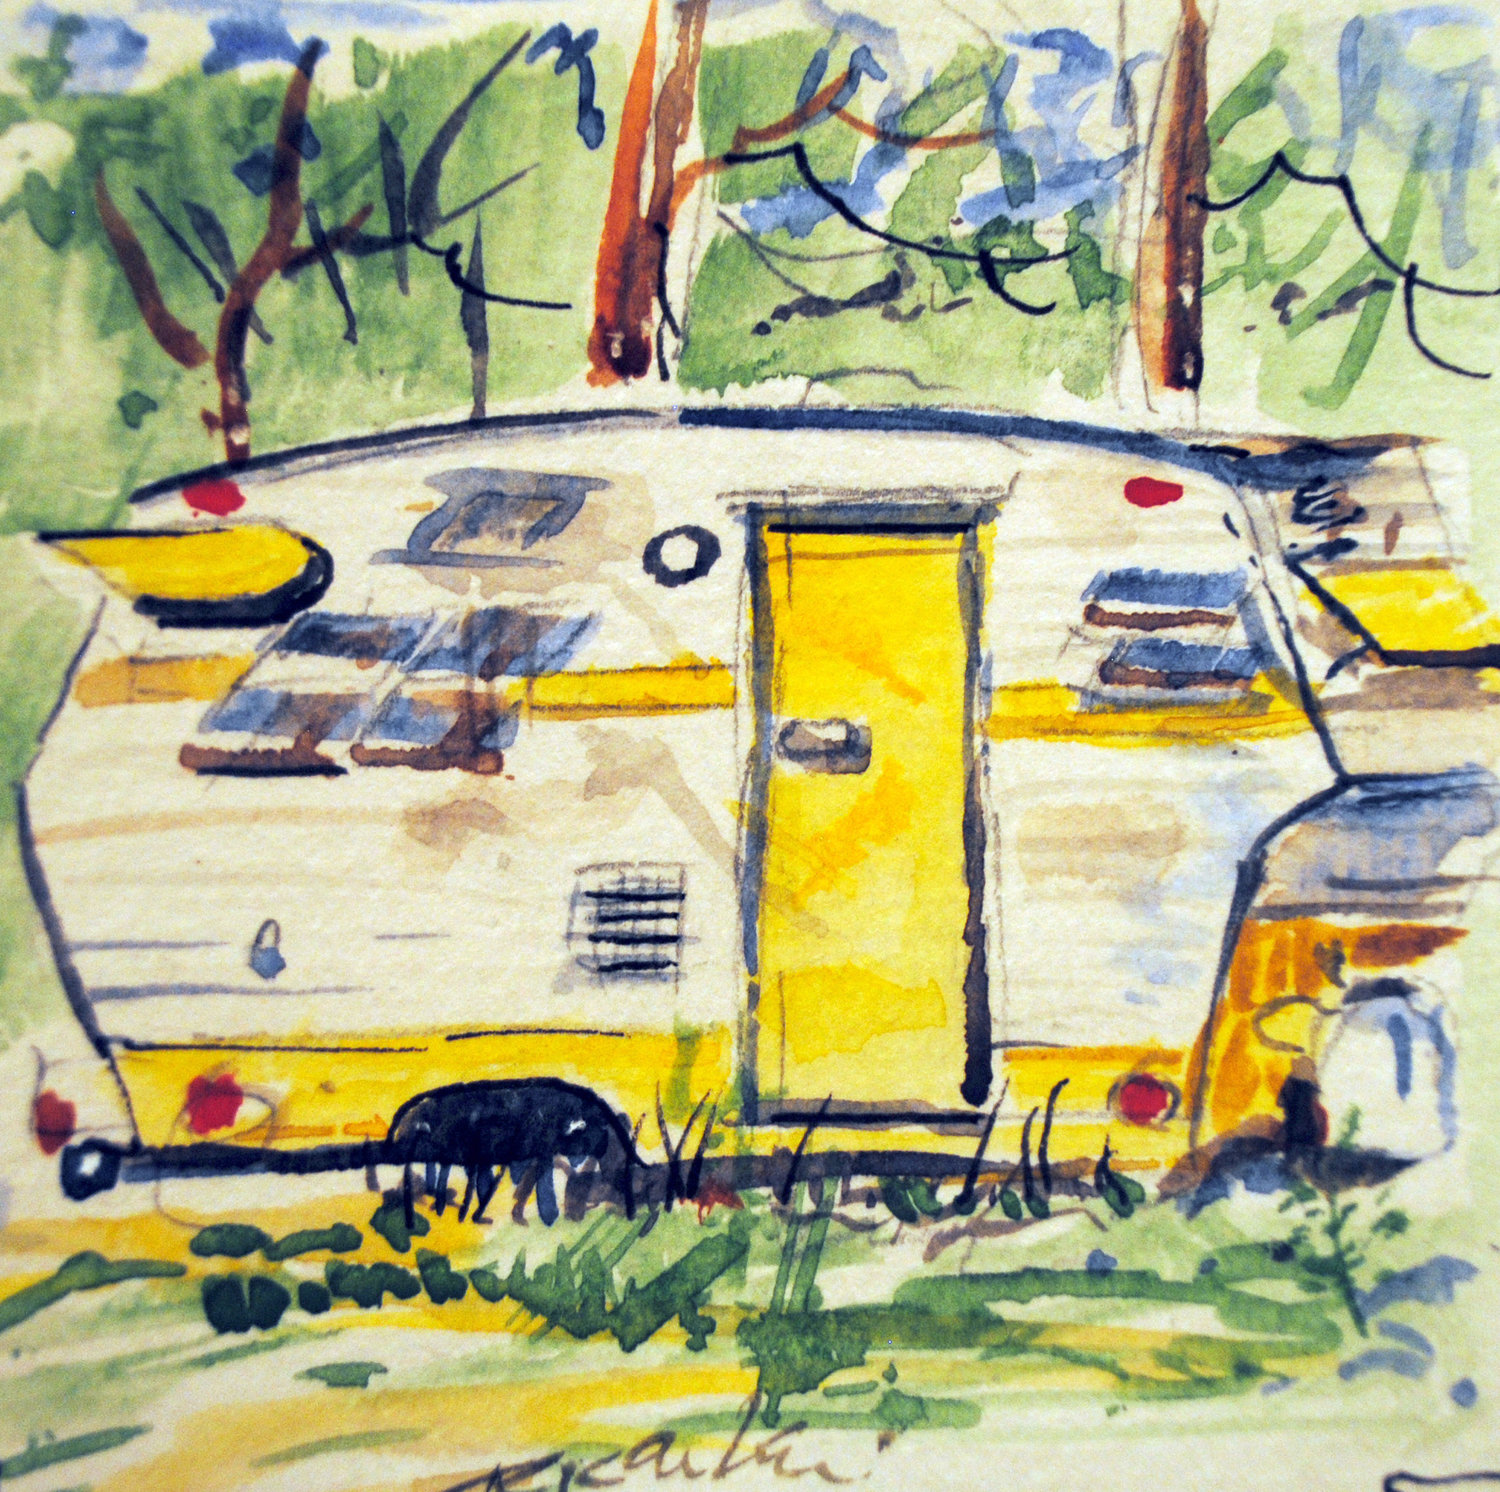 SUMMER DESTINATION — This traveling trailer is just one of the summer-themed watercolor paintings that were featured during last year's Just Add Water exhibit.